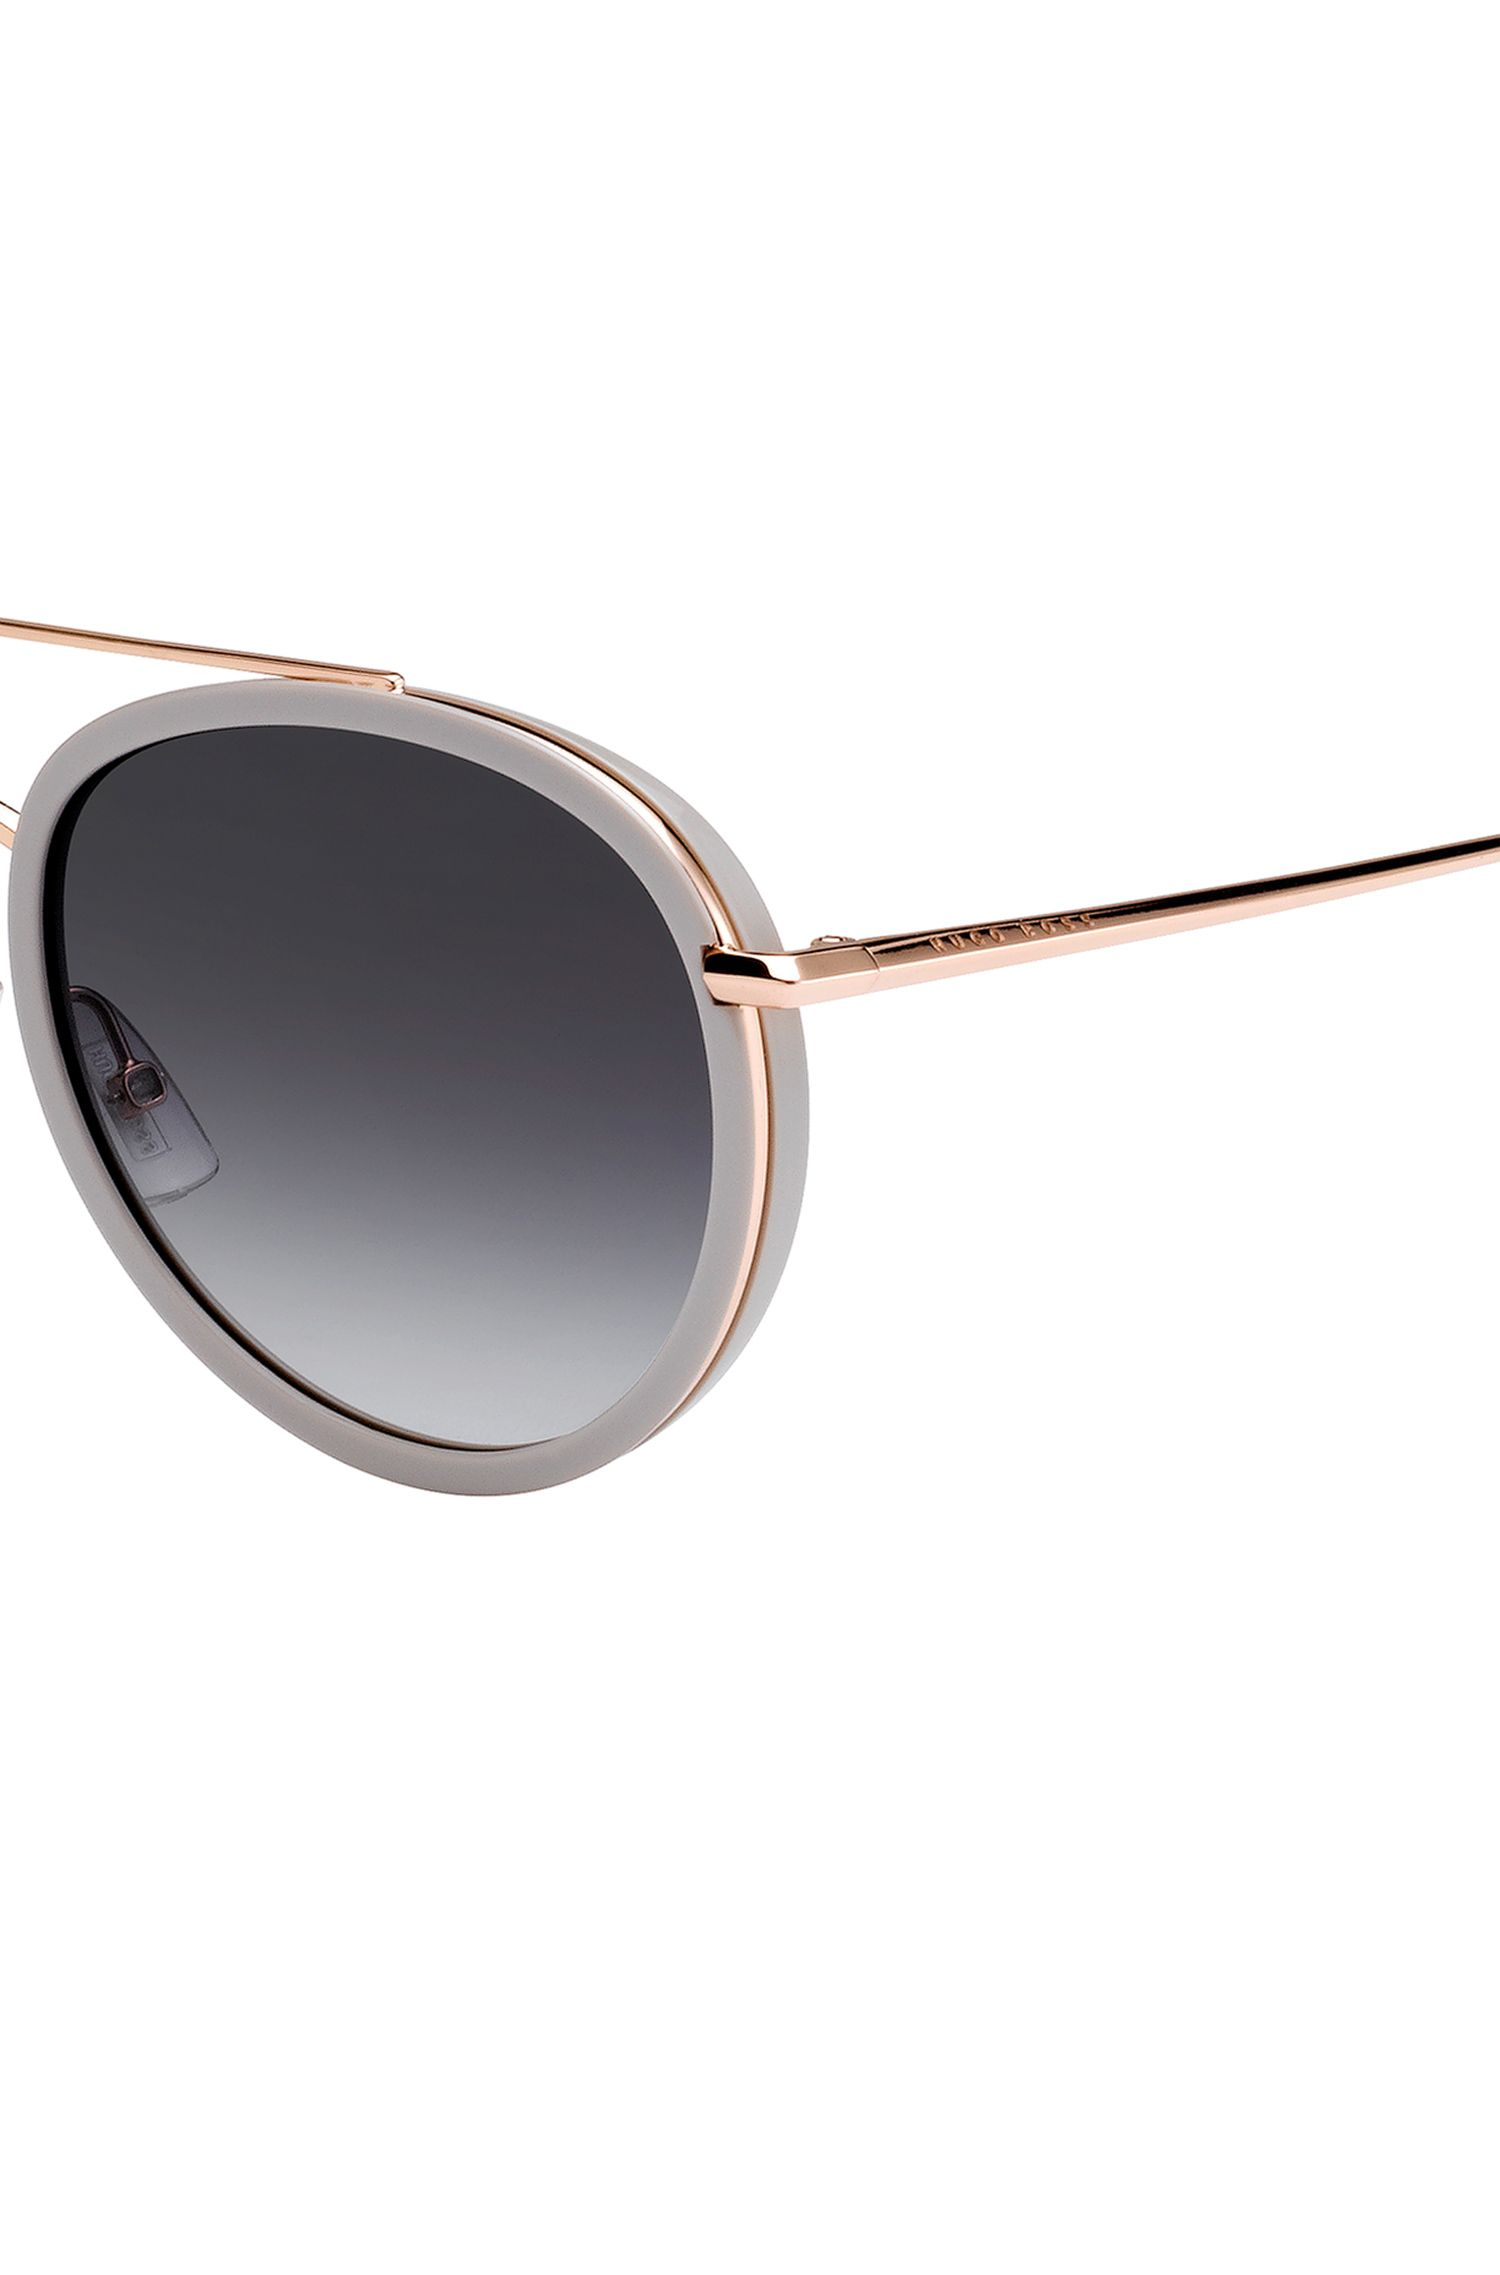 Double-bridge sunglasses with shaded lenses